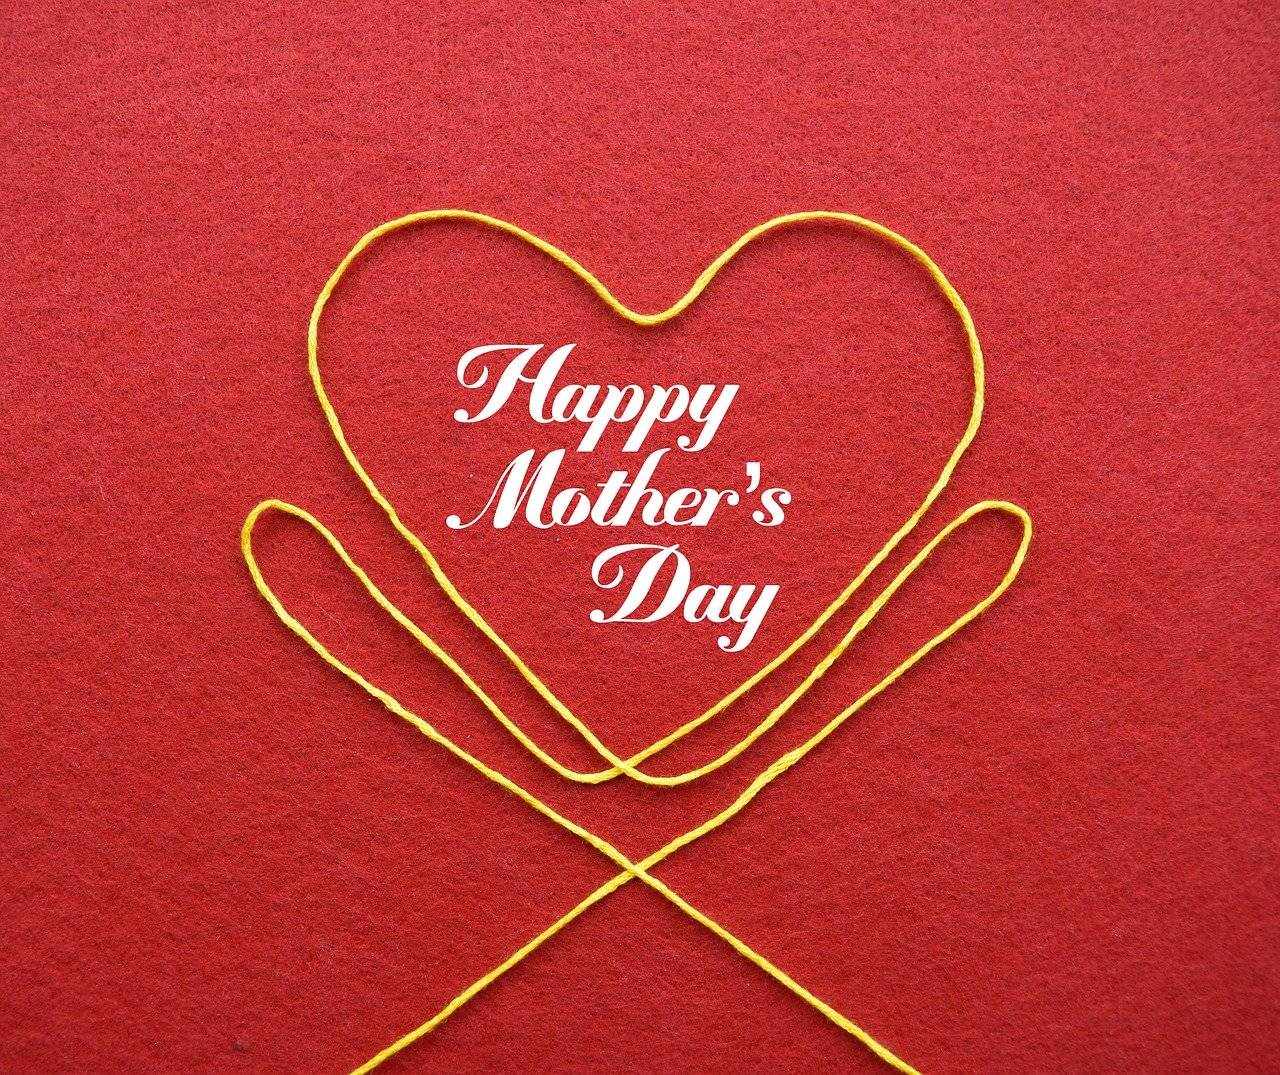 Happy Mother's Day 2020: Messages, Greetings